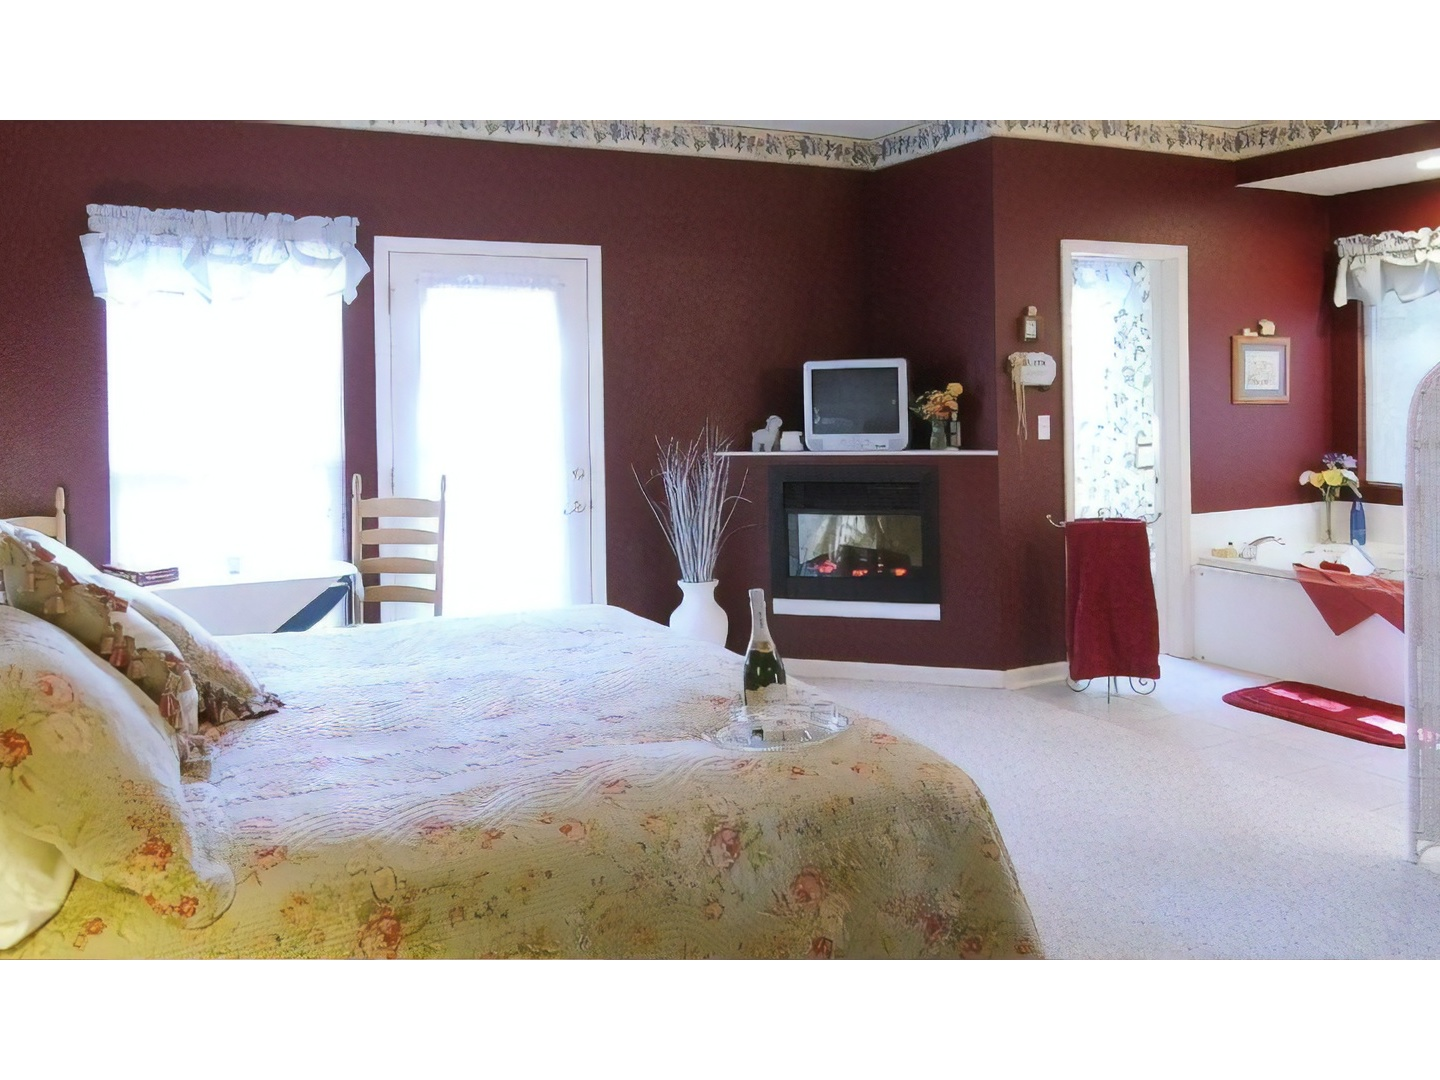 A bedroom with a large bed in a room at Inn At Harbour Ridge Bed and Breakfast.